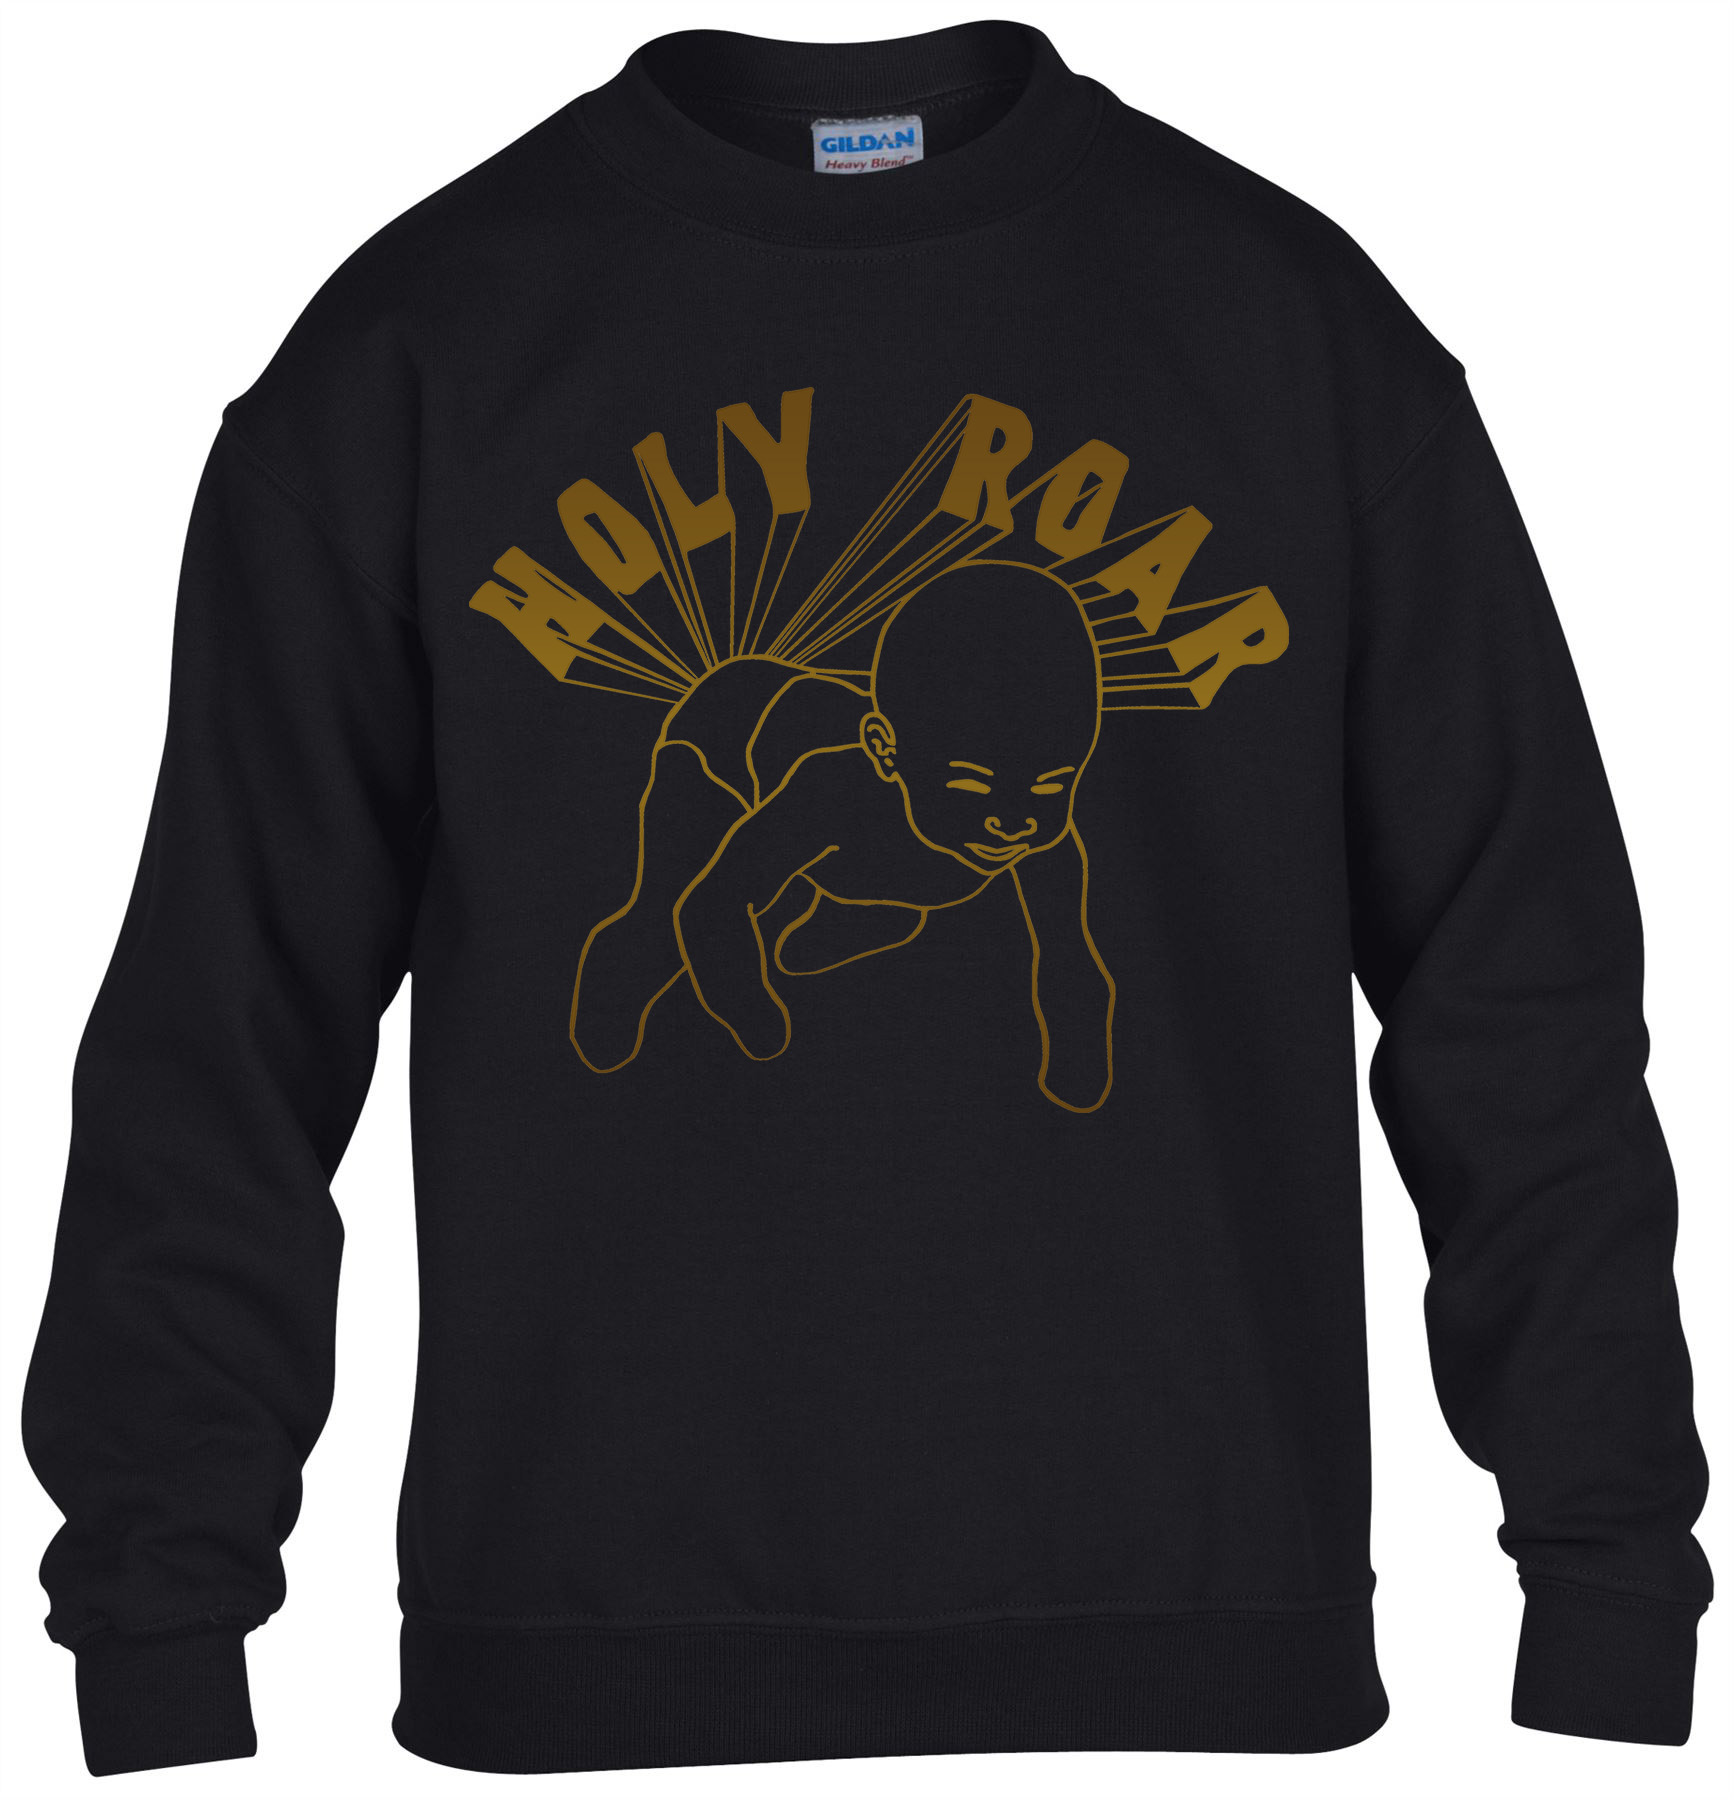 Holy Roar Crewneck Sweater PREORDER